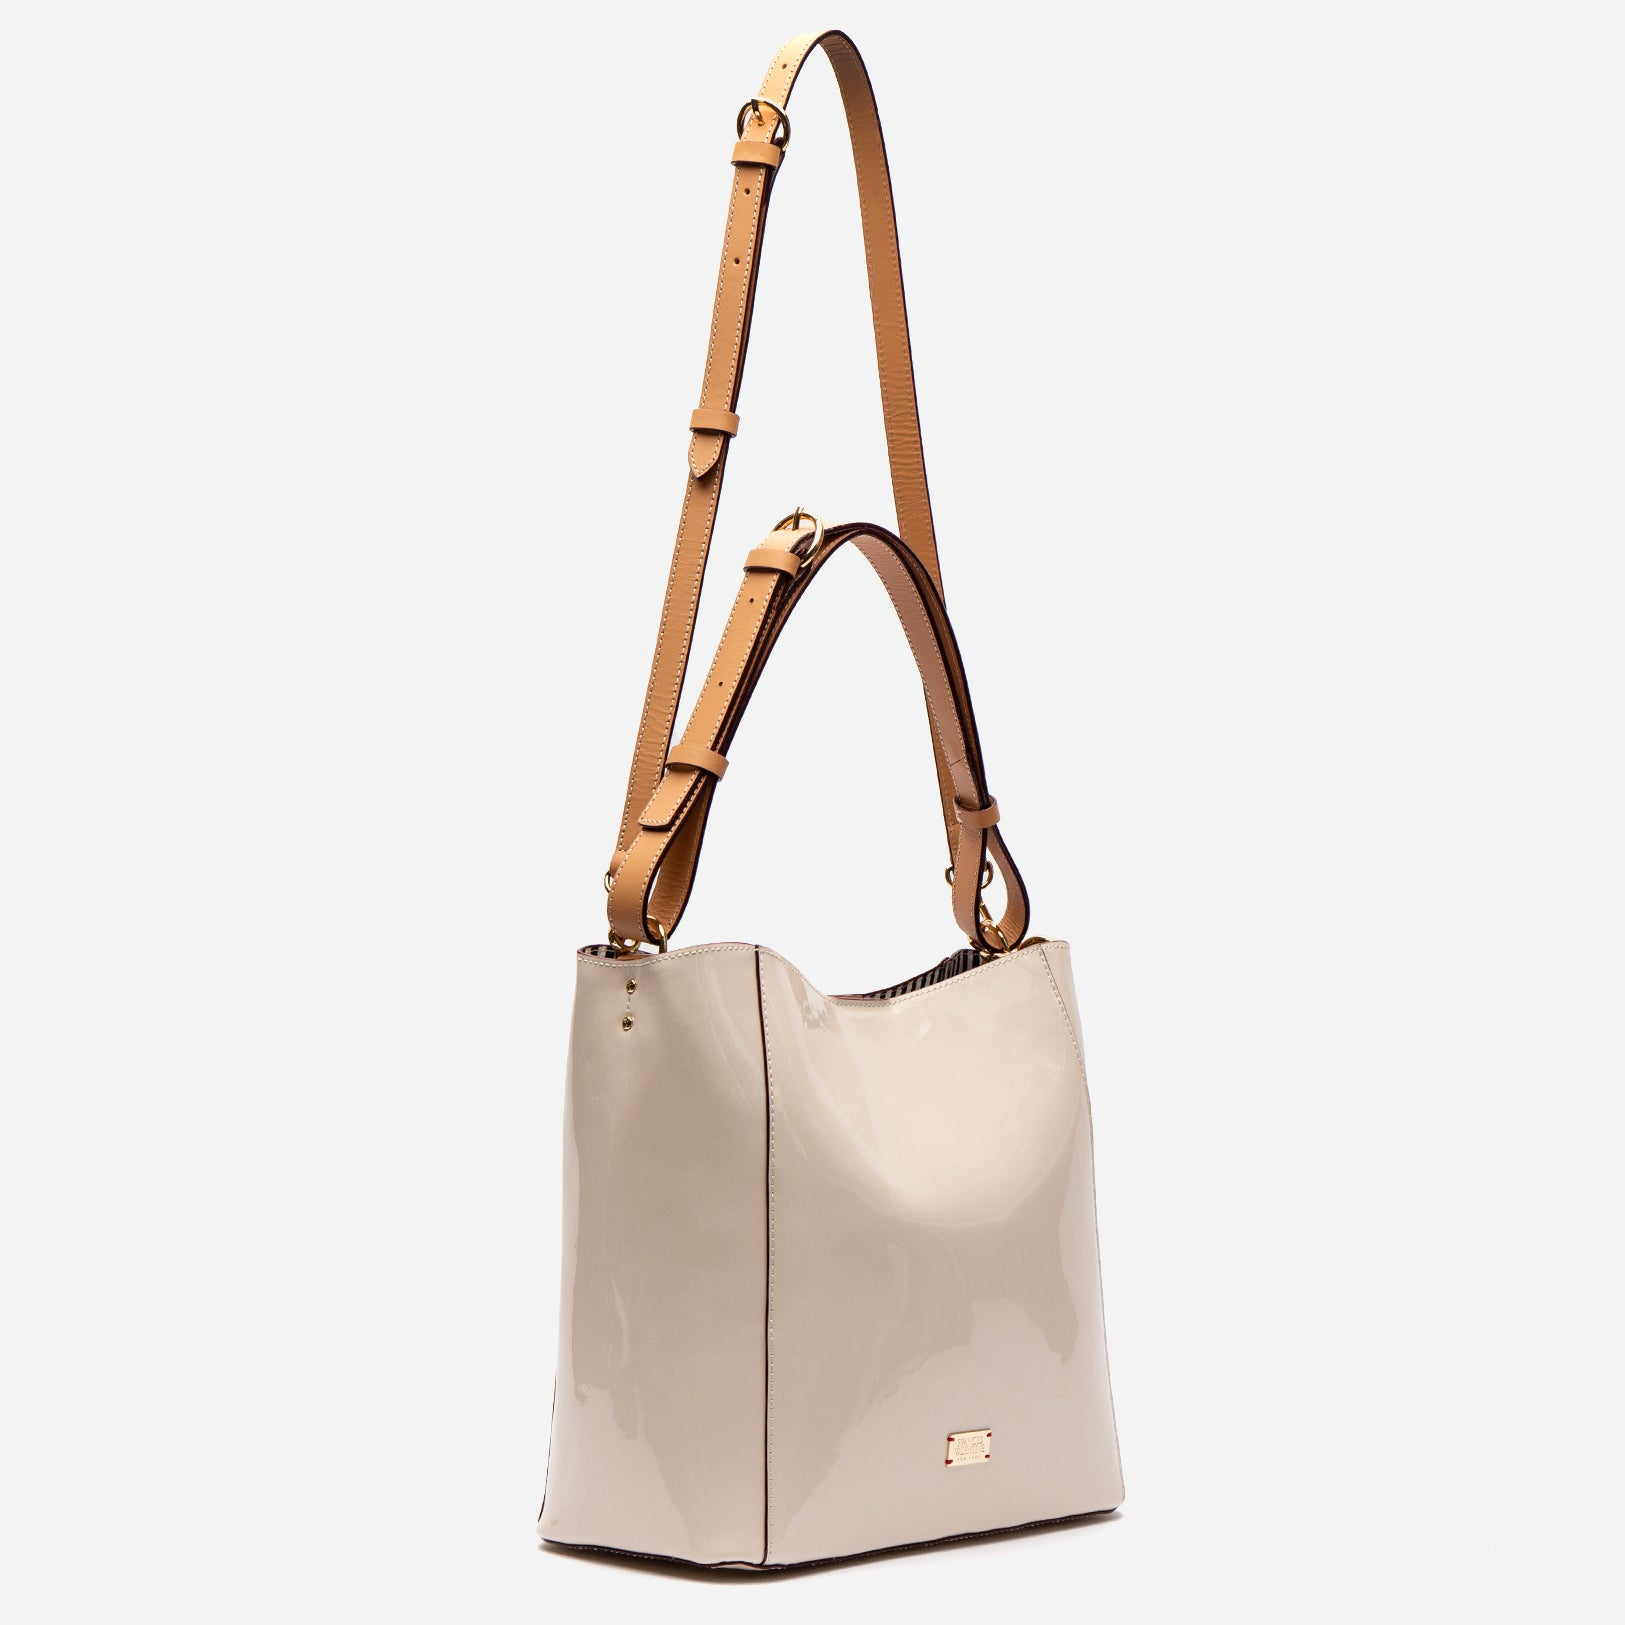 June Hobo Handbag Oyster Patent